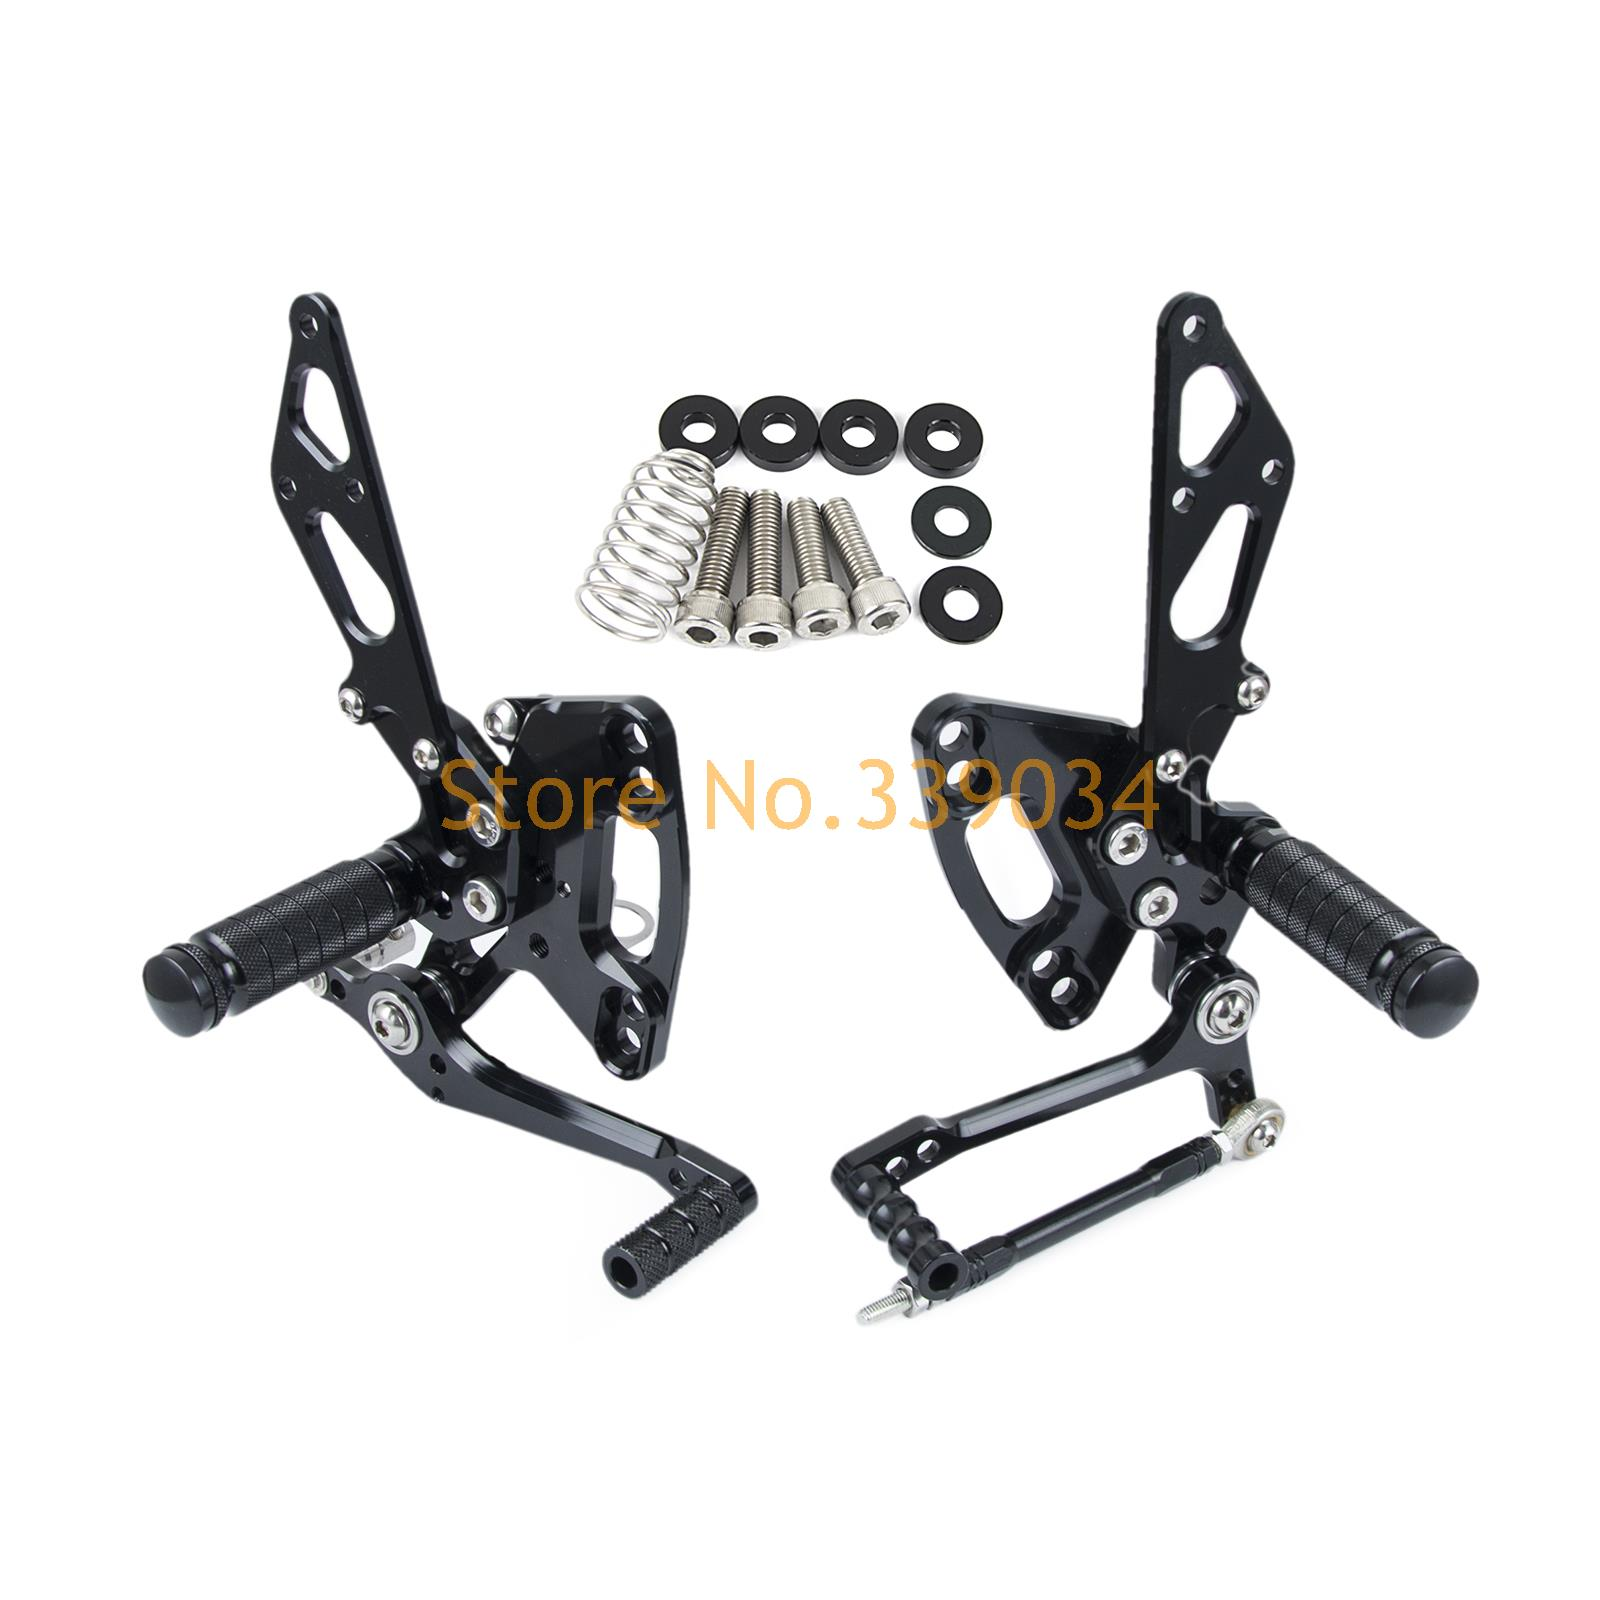 New Arrived CNC Adjustable Foot pegs Rearset Footrests Rear Sets For Kawasaki Ninja 1000 /ABS Z1000/ABS Z1000SX 2011 2012 2013 cnc aluminum motorcycle adjustable rearset rear set foot pegs pedal footrest for kawasaki ninja 650 ex650 er 6n er 6f 2012 2016